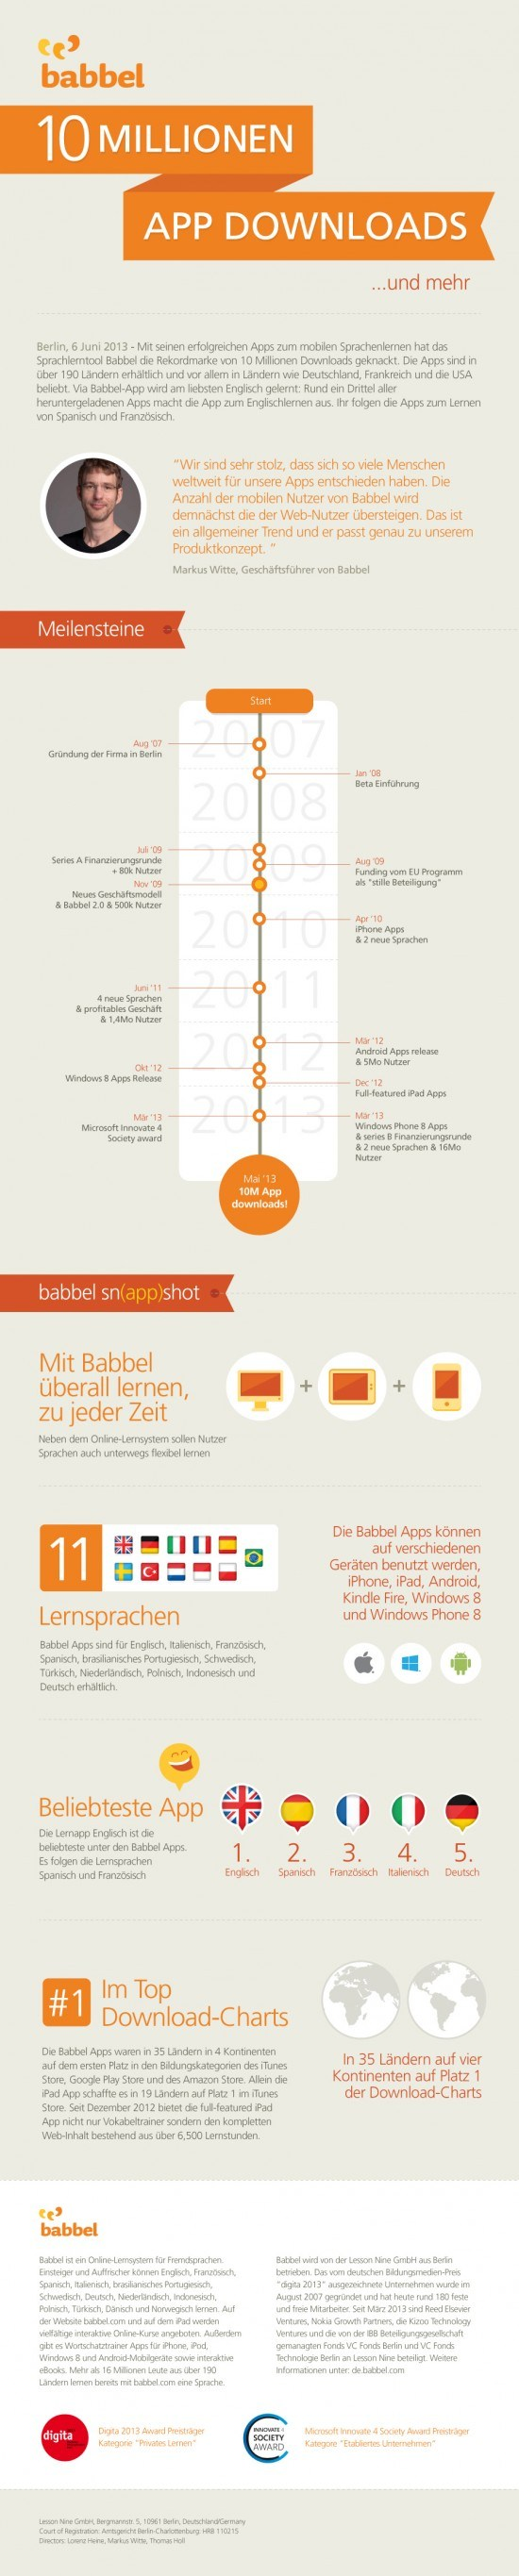 Babbel Apps knacken die 10 Millionen Downloads